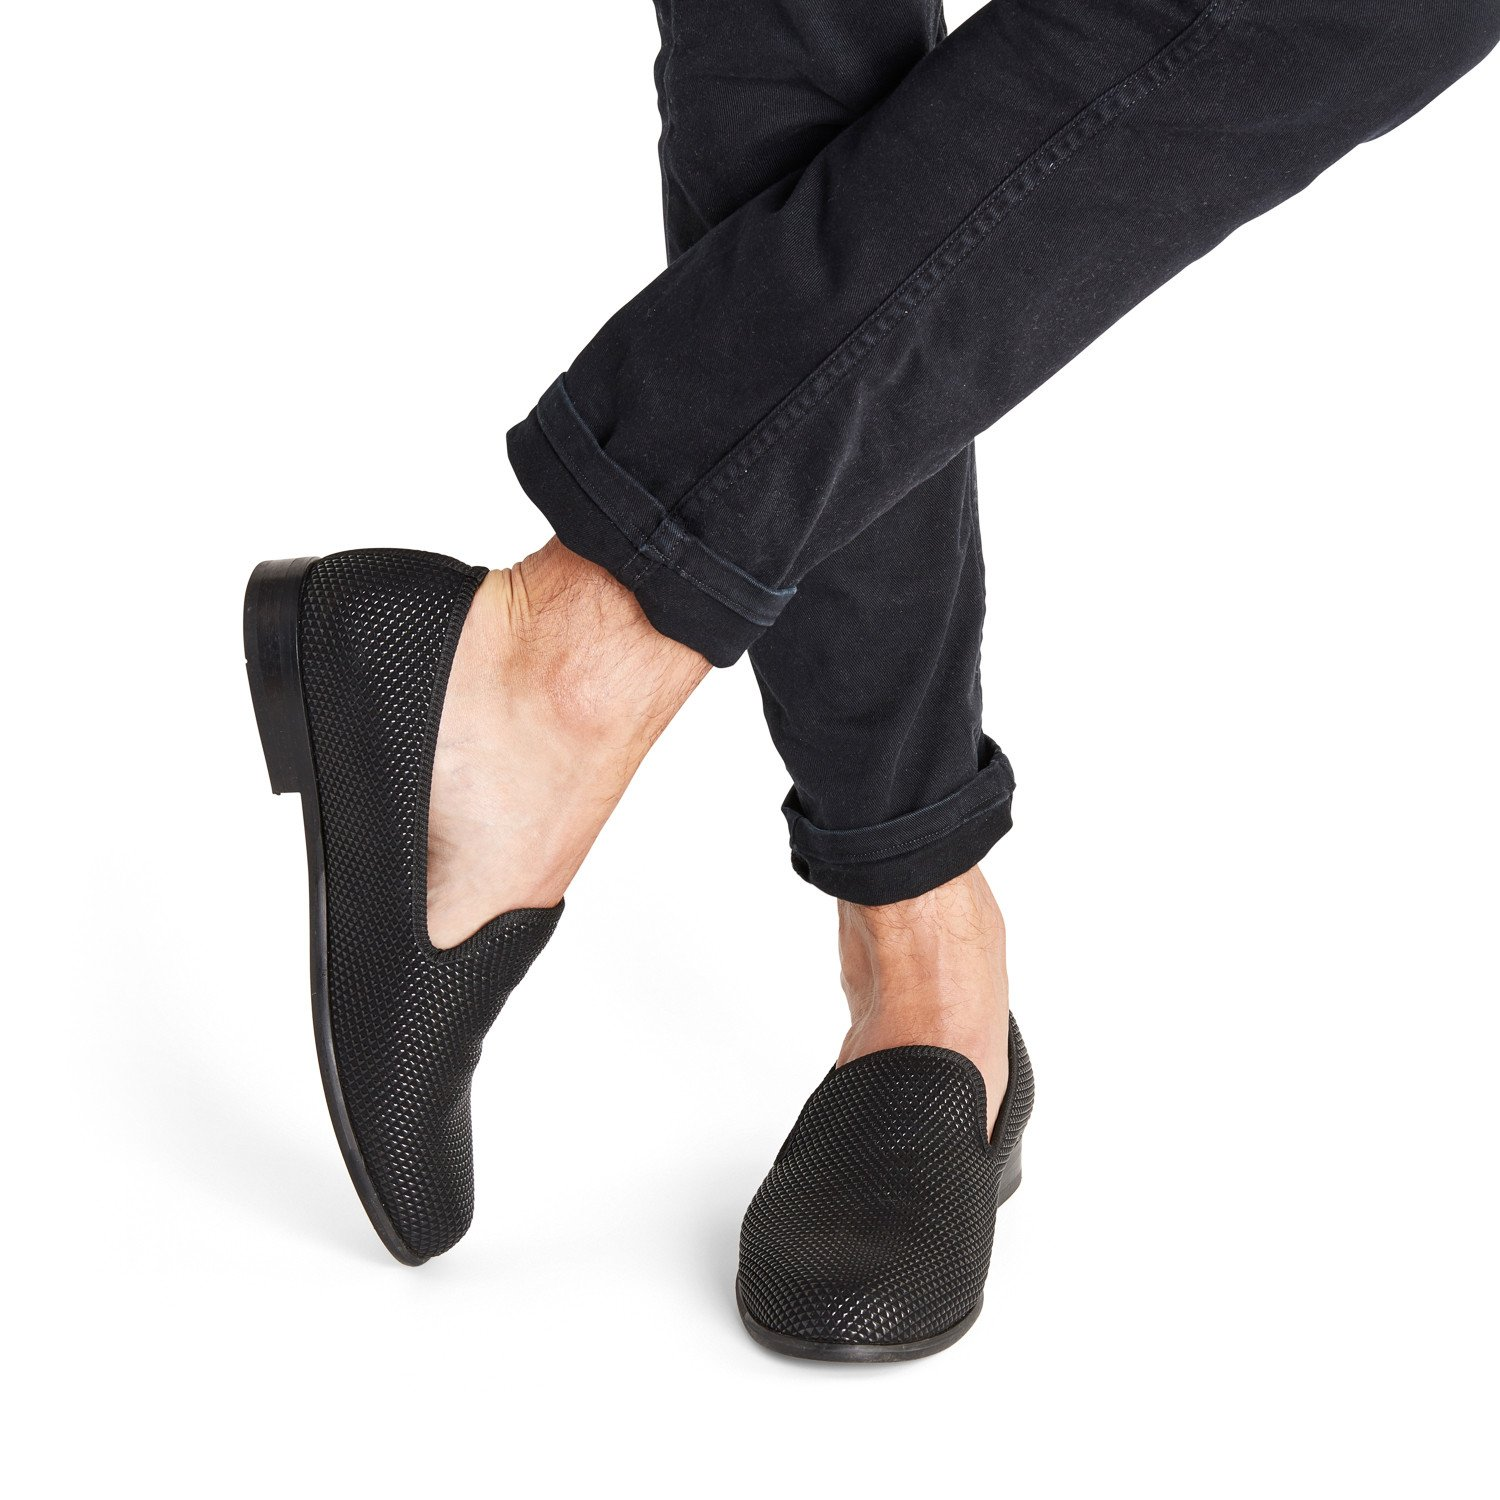 He Cleans Up Well - These loafers are clean, minimal and timeless- Duke & Dexter